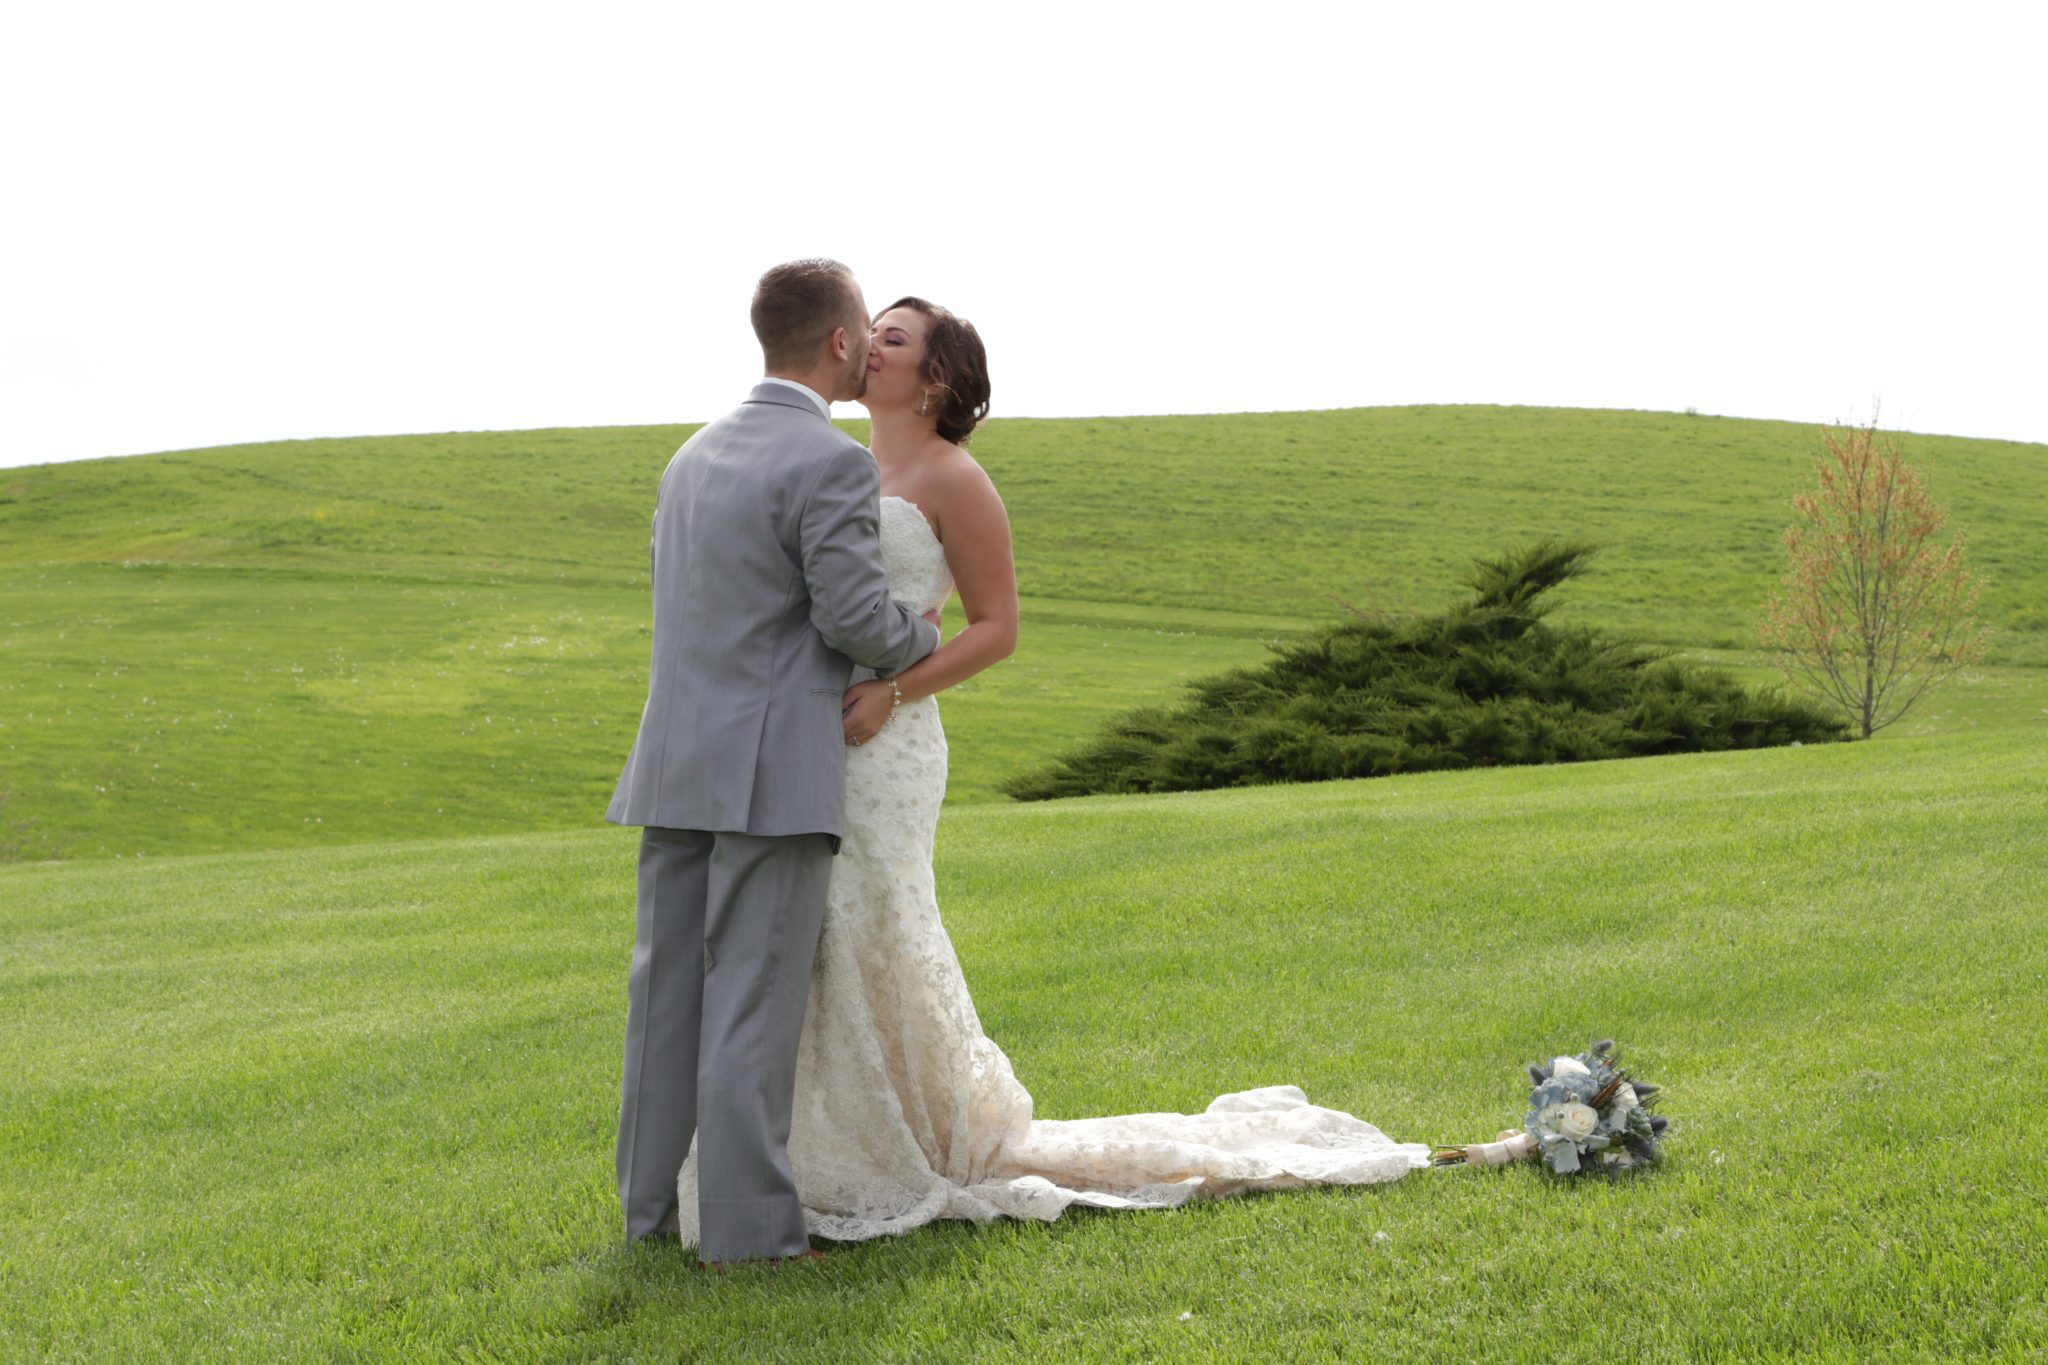 Bride and groom kiss on the lawn after their April country wedding